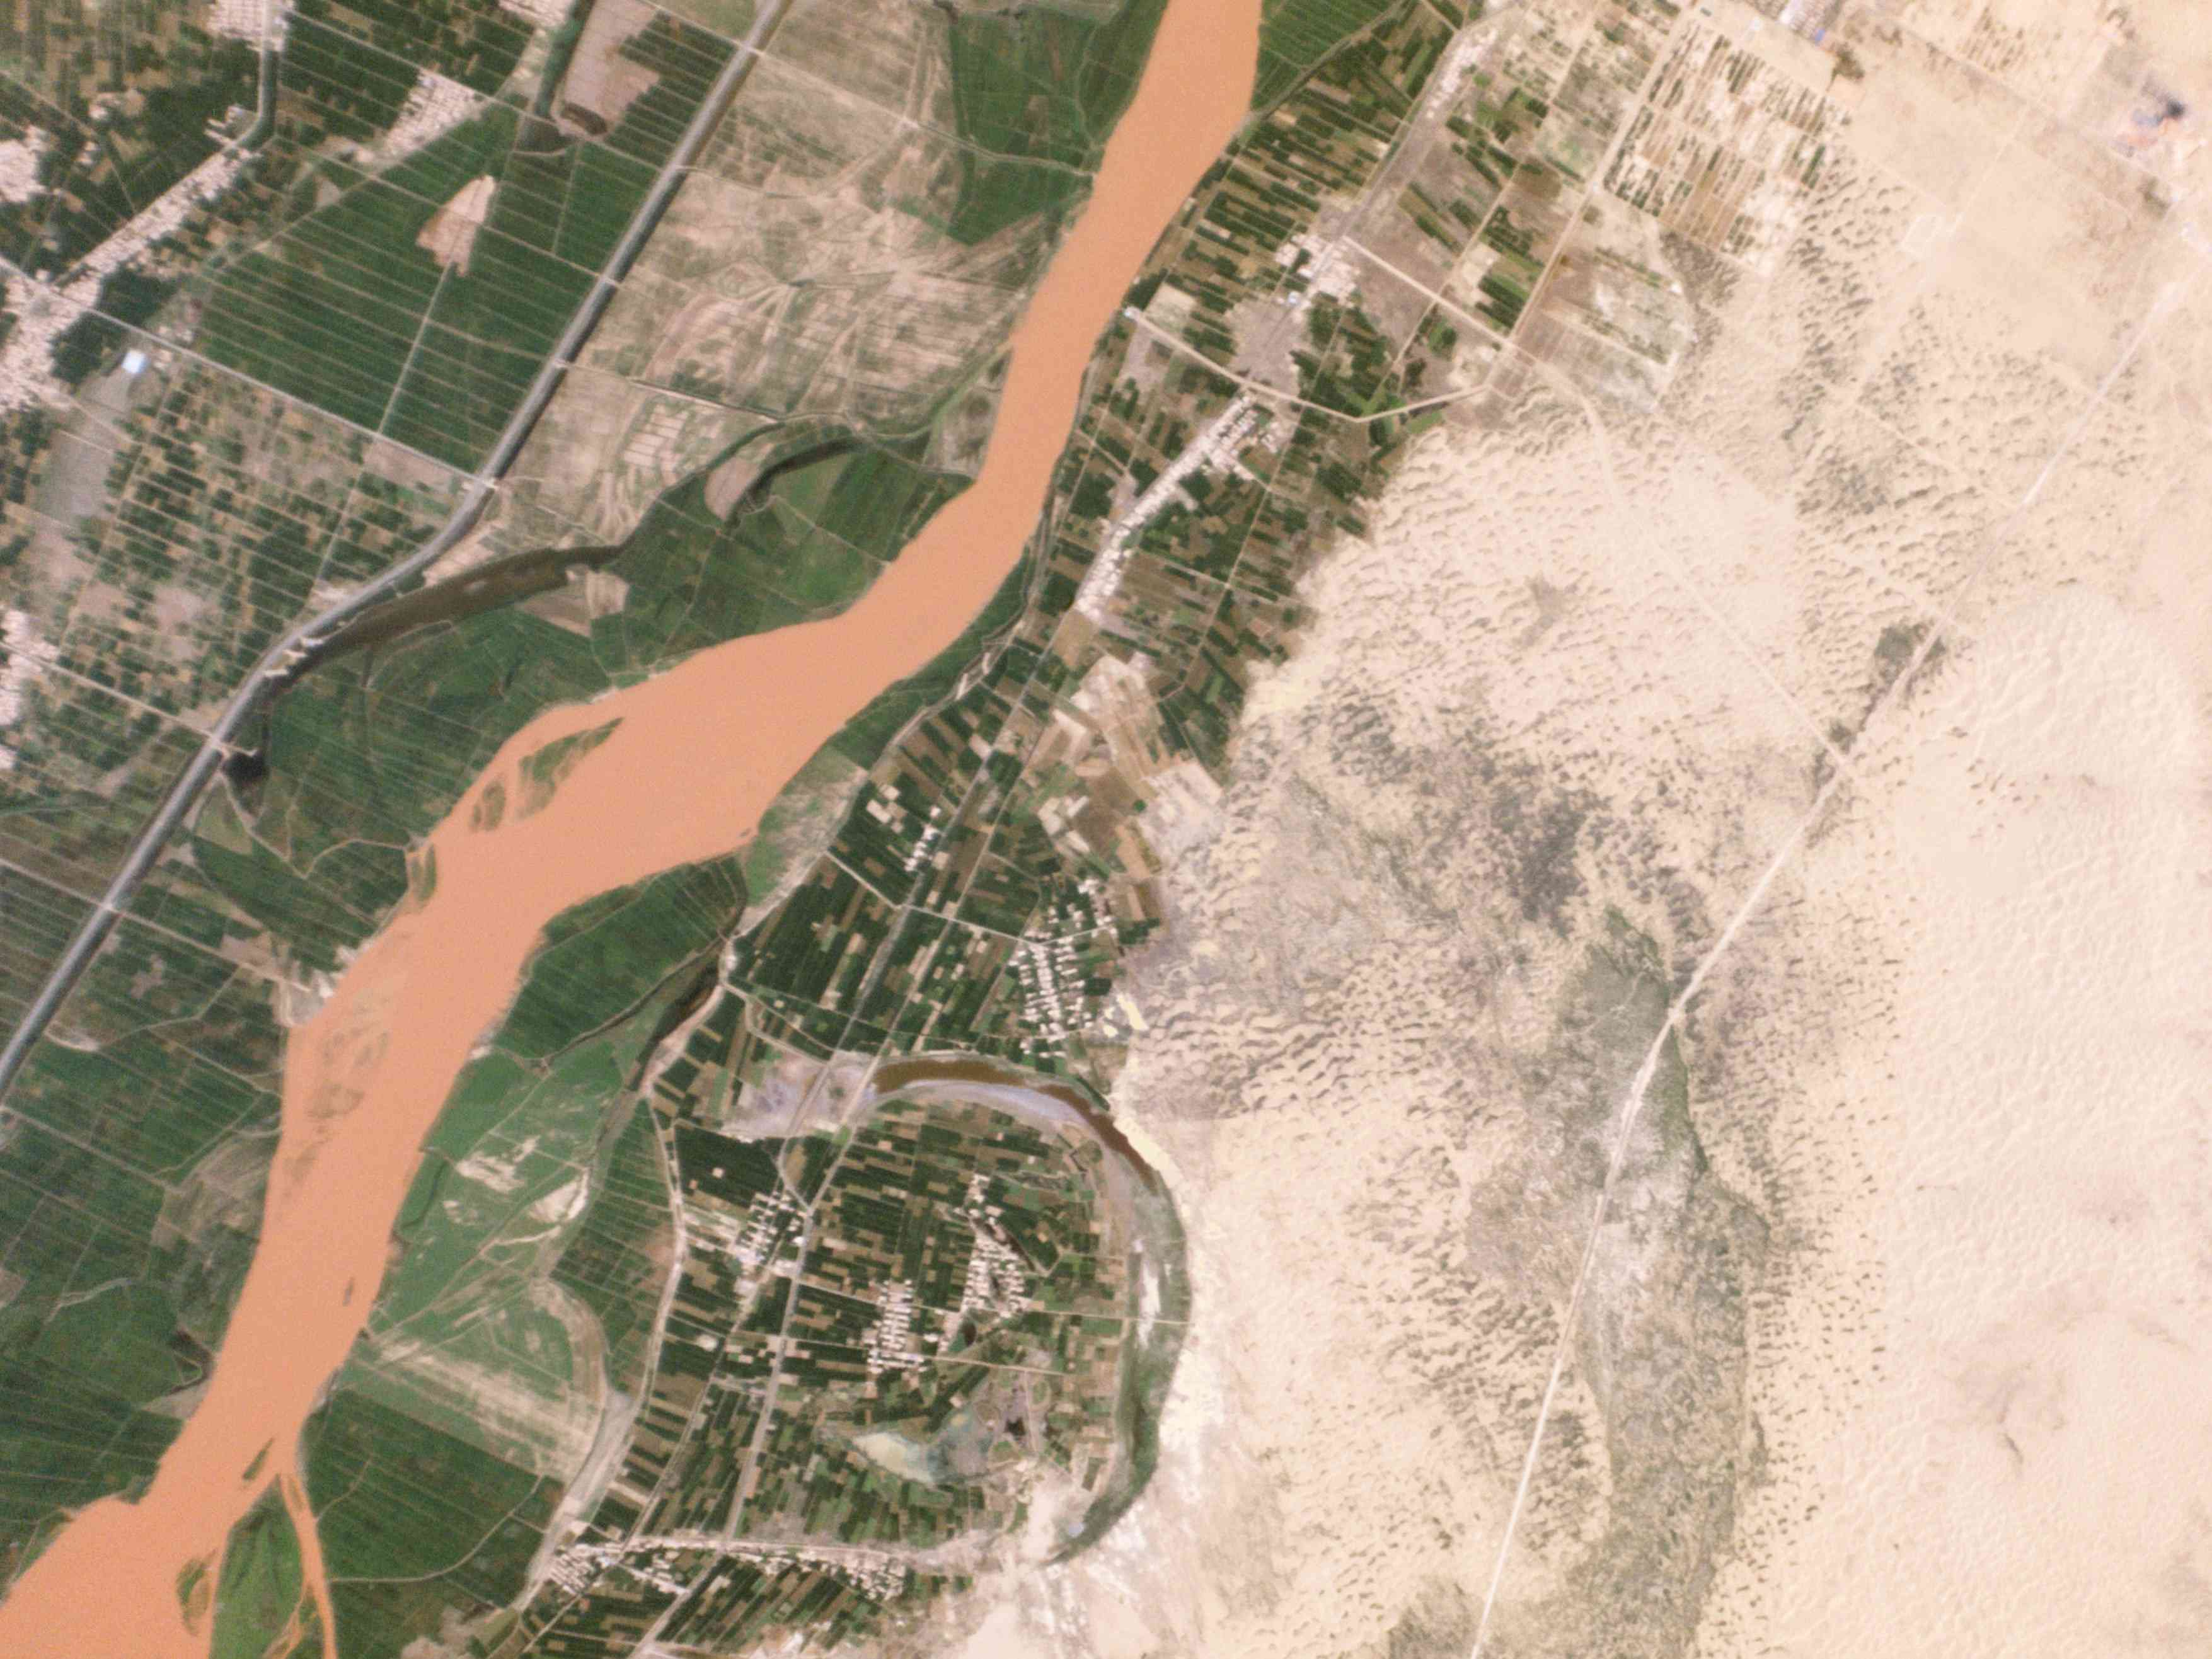 Aerial satellite image of desertification in China